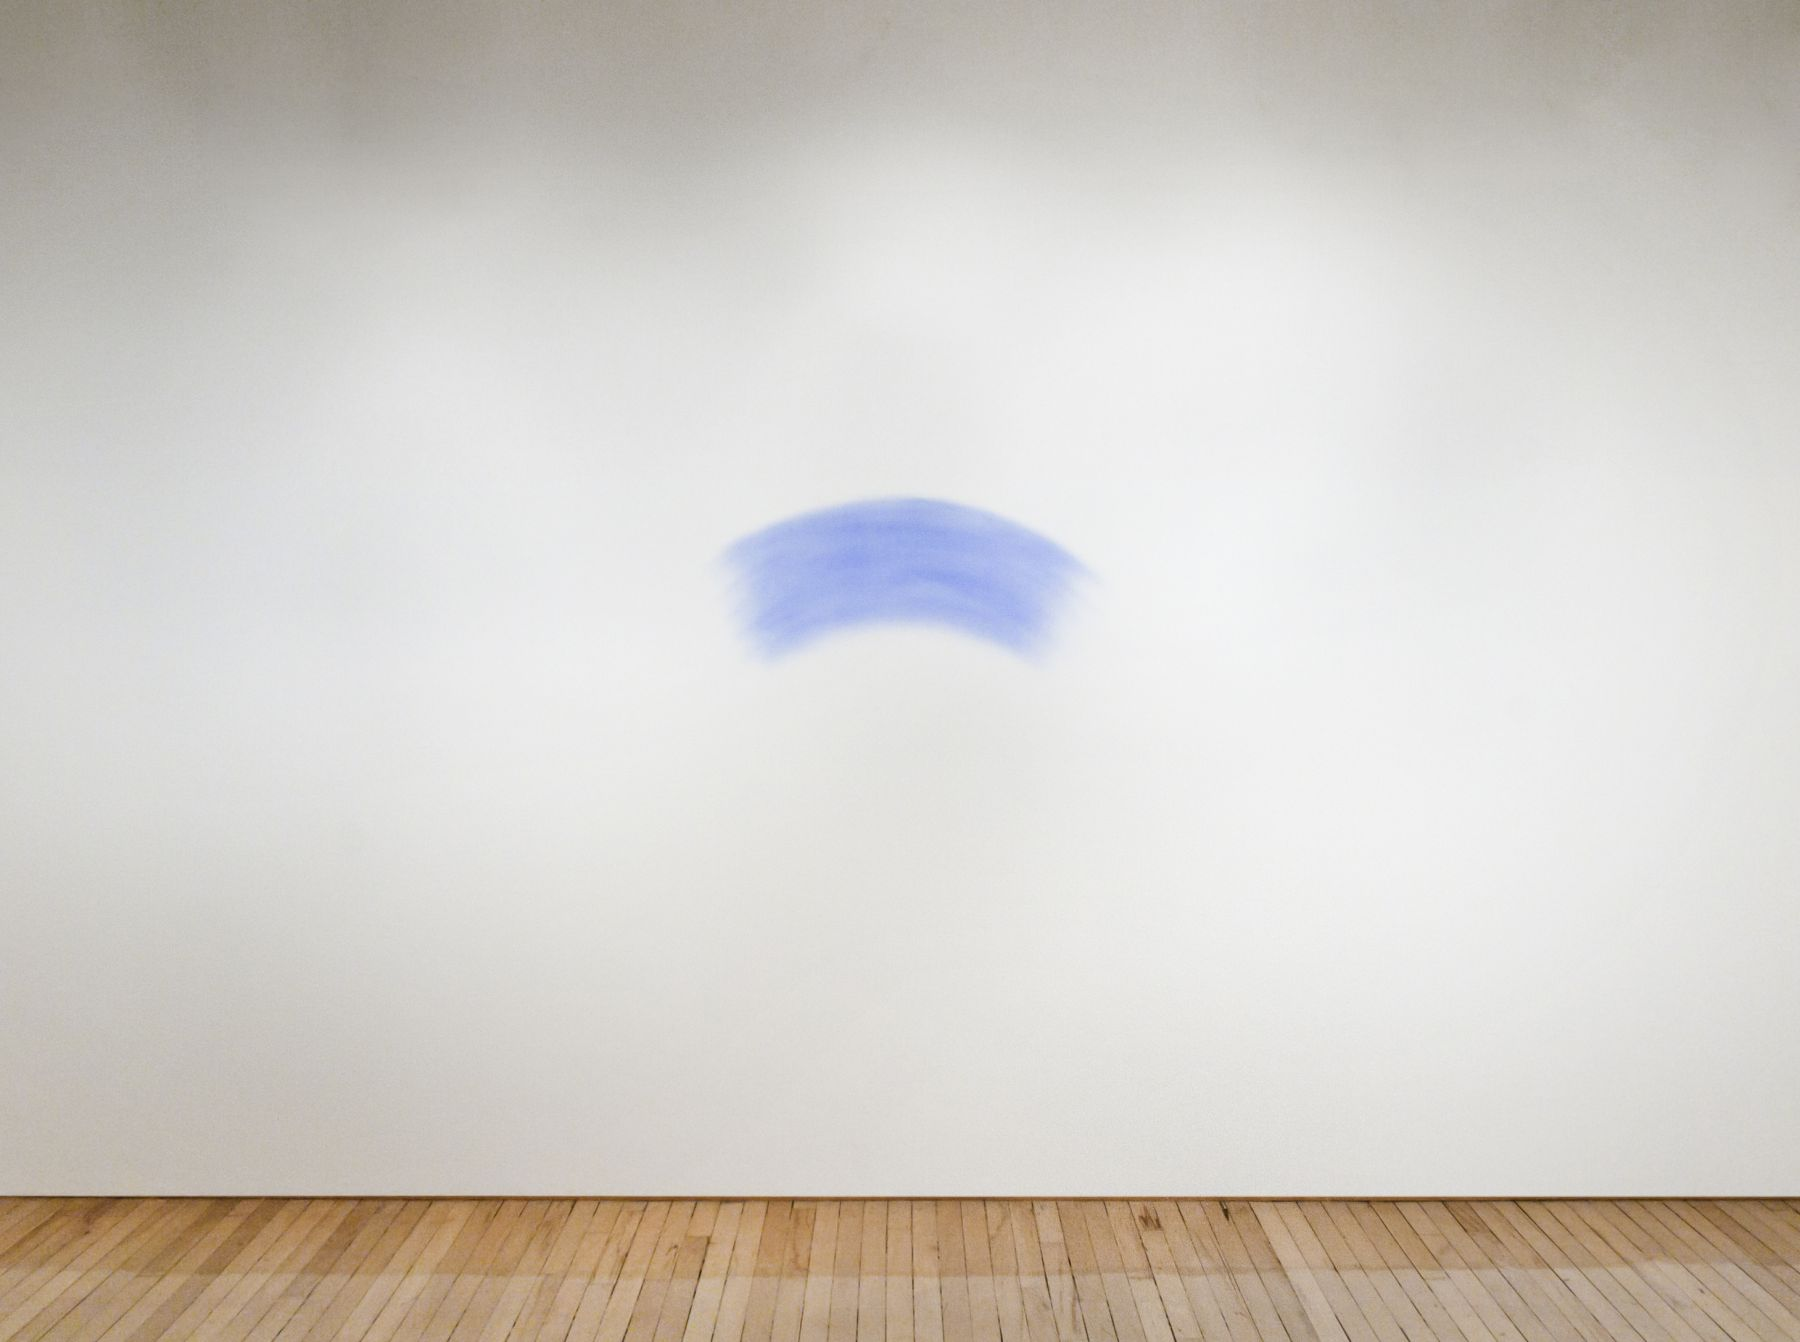 Mel Bochner,Smudge,1968. Blue powder pigment on wall, 17 x 39 inches.